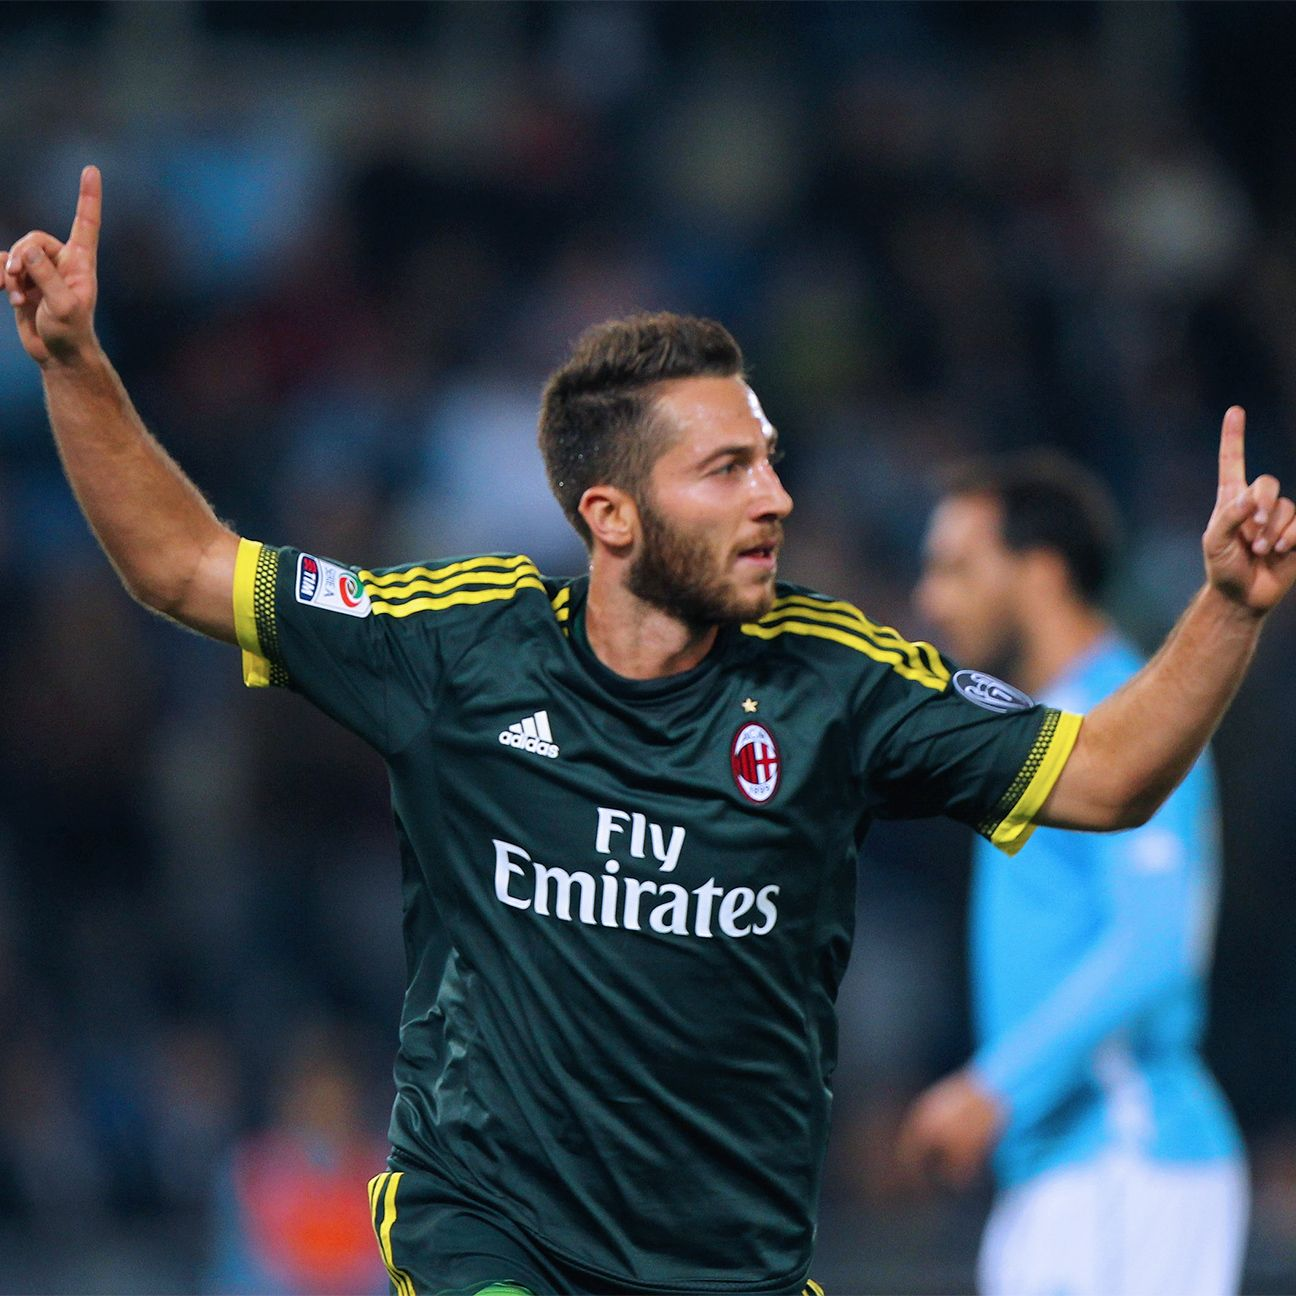 Andrea Bertolacci's first half goal helped Milan get off to a solid start at Lazio.